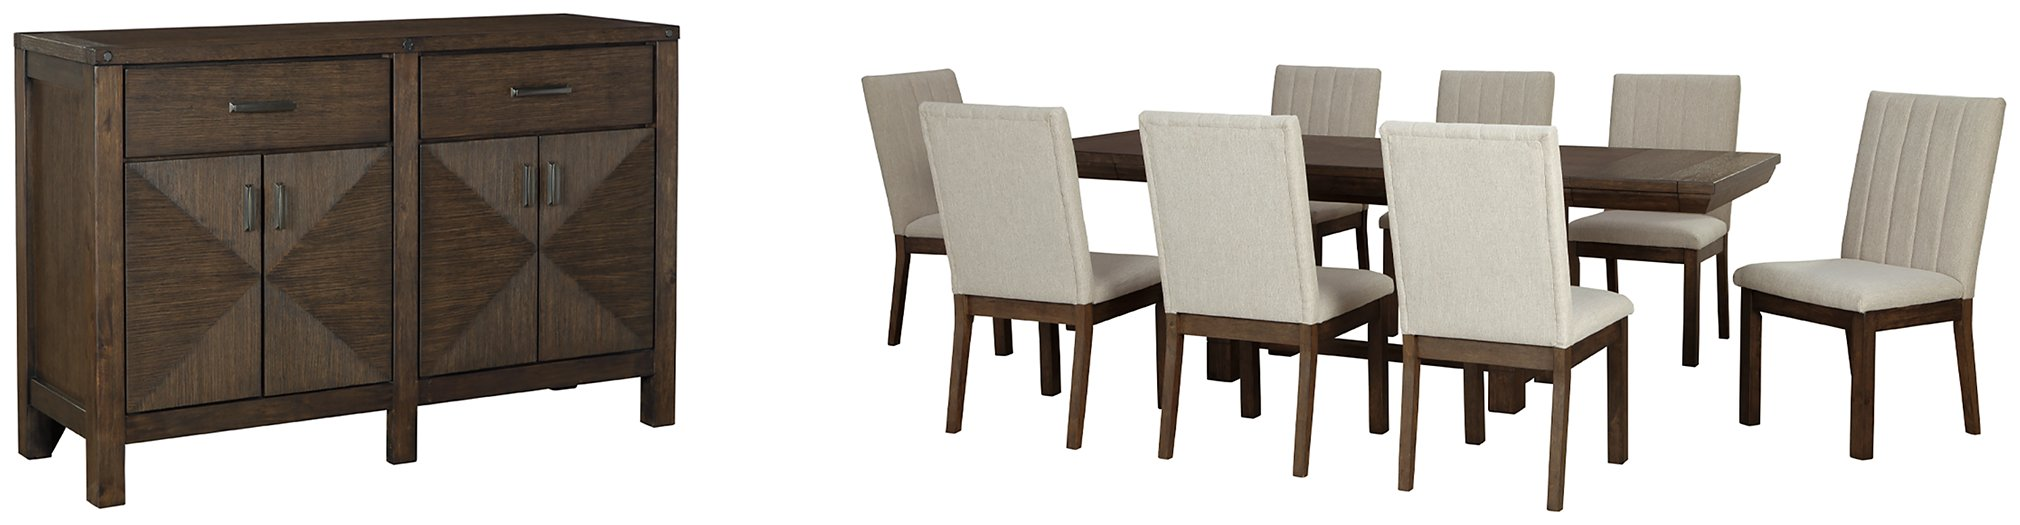 Dellbeck Millennium 10-Piece Dining Room Package image